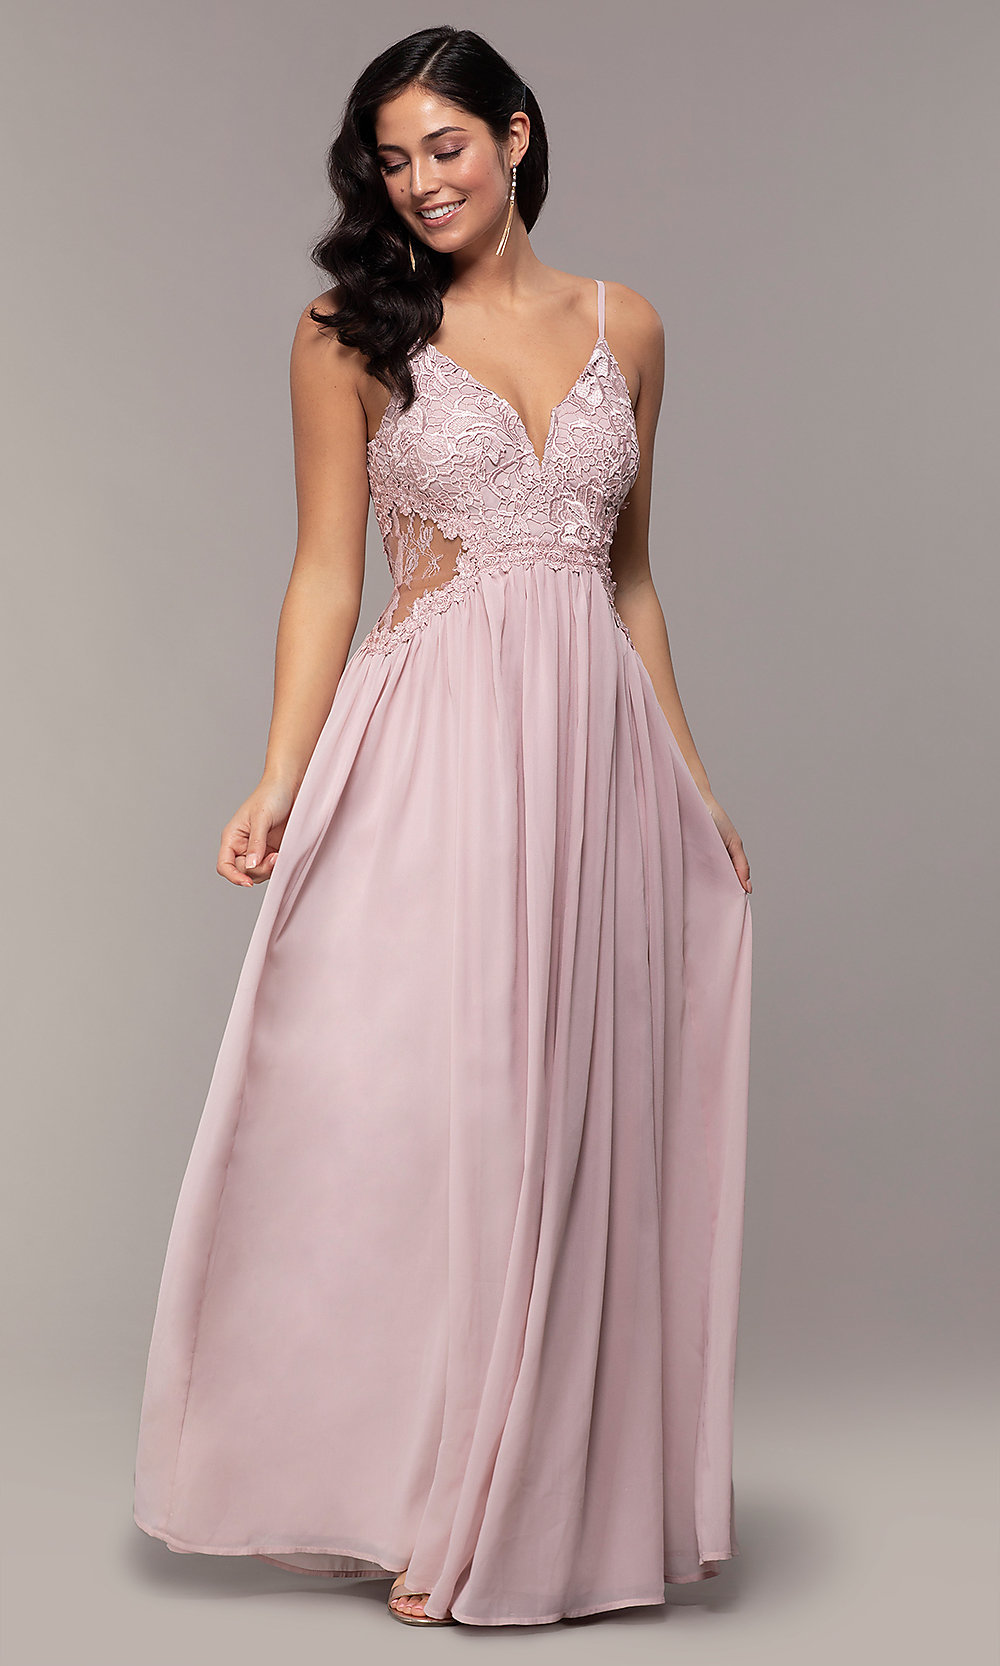 e2ace871e45 ... chiffon prom dress with v-neck lace bodice. Style  SOI. Tap to expand